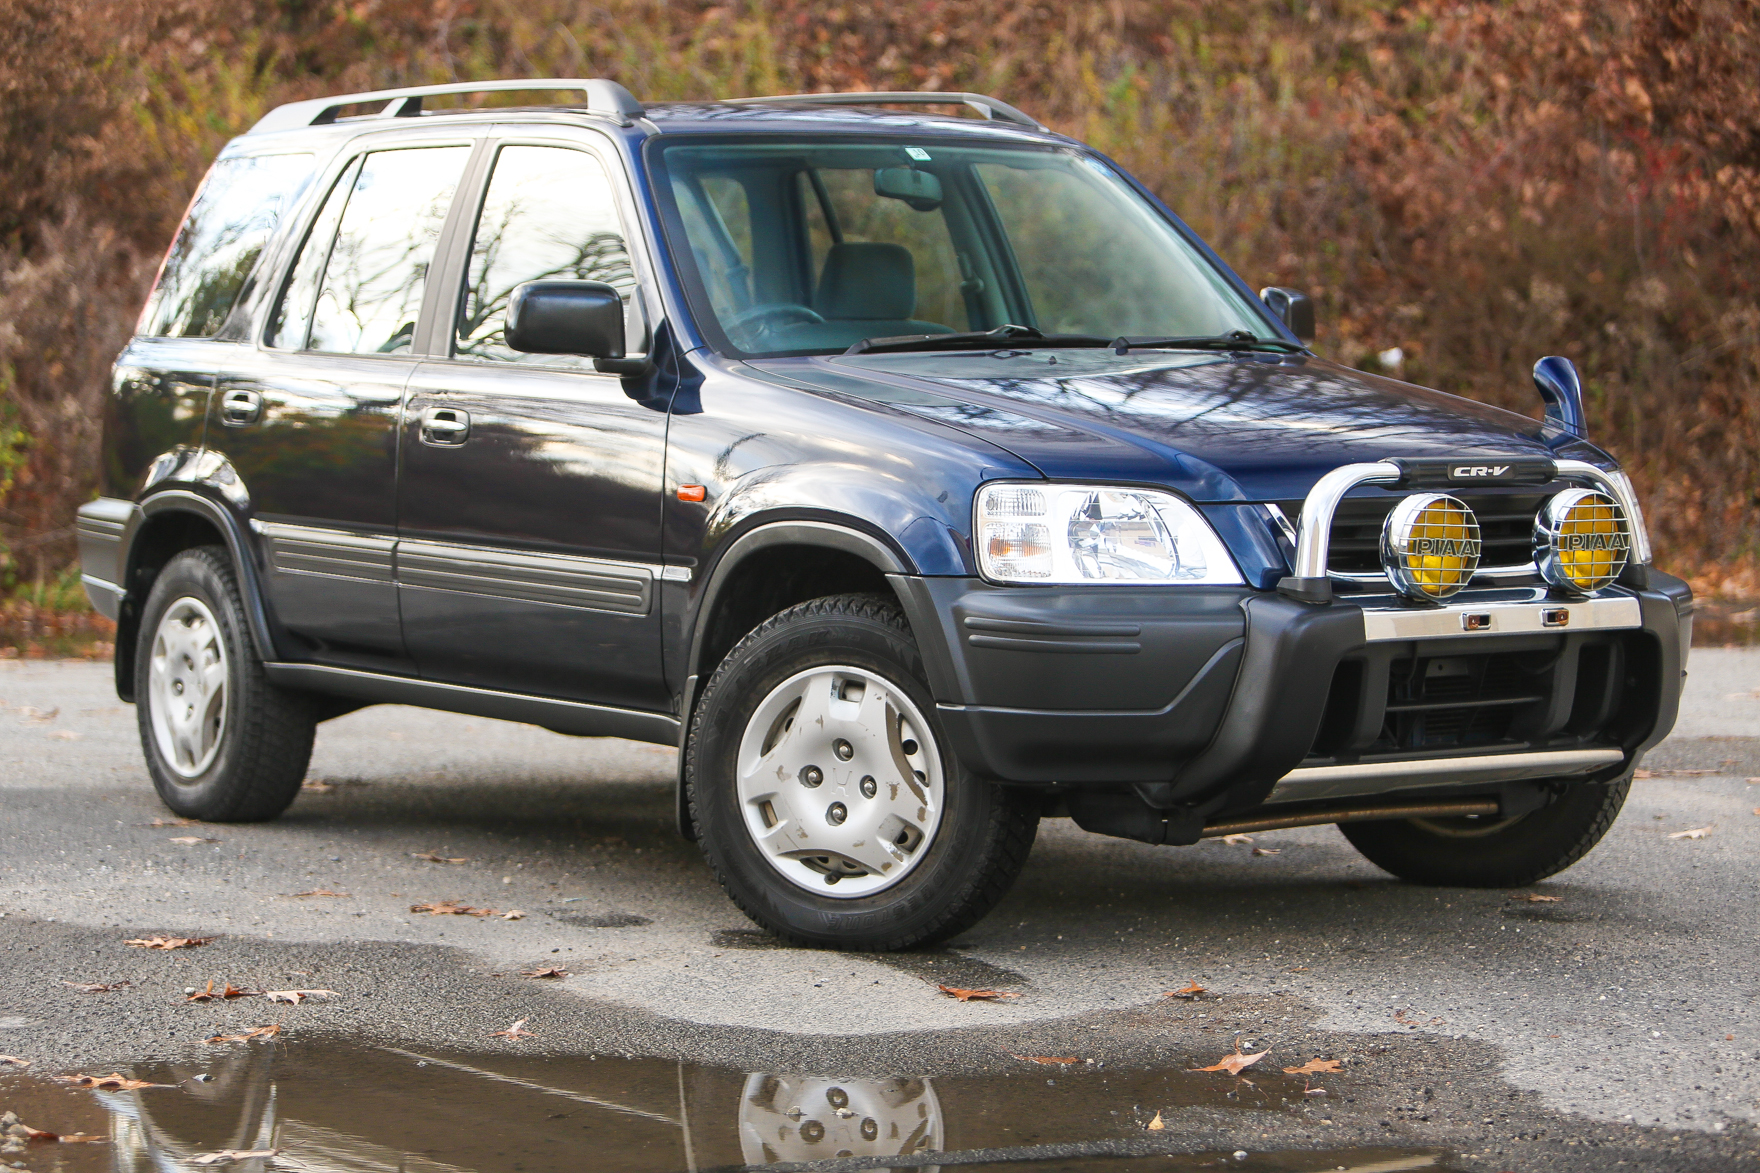 1995 Honda CRV L-Package - Available for $15,500